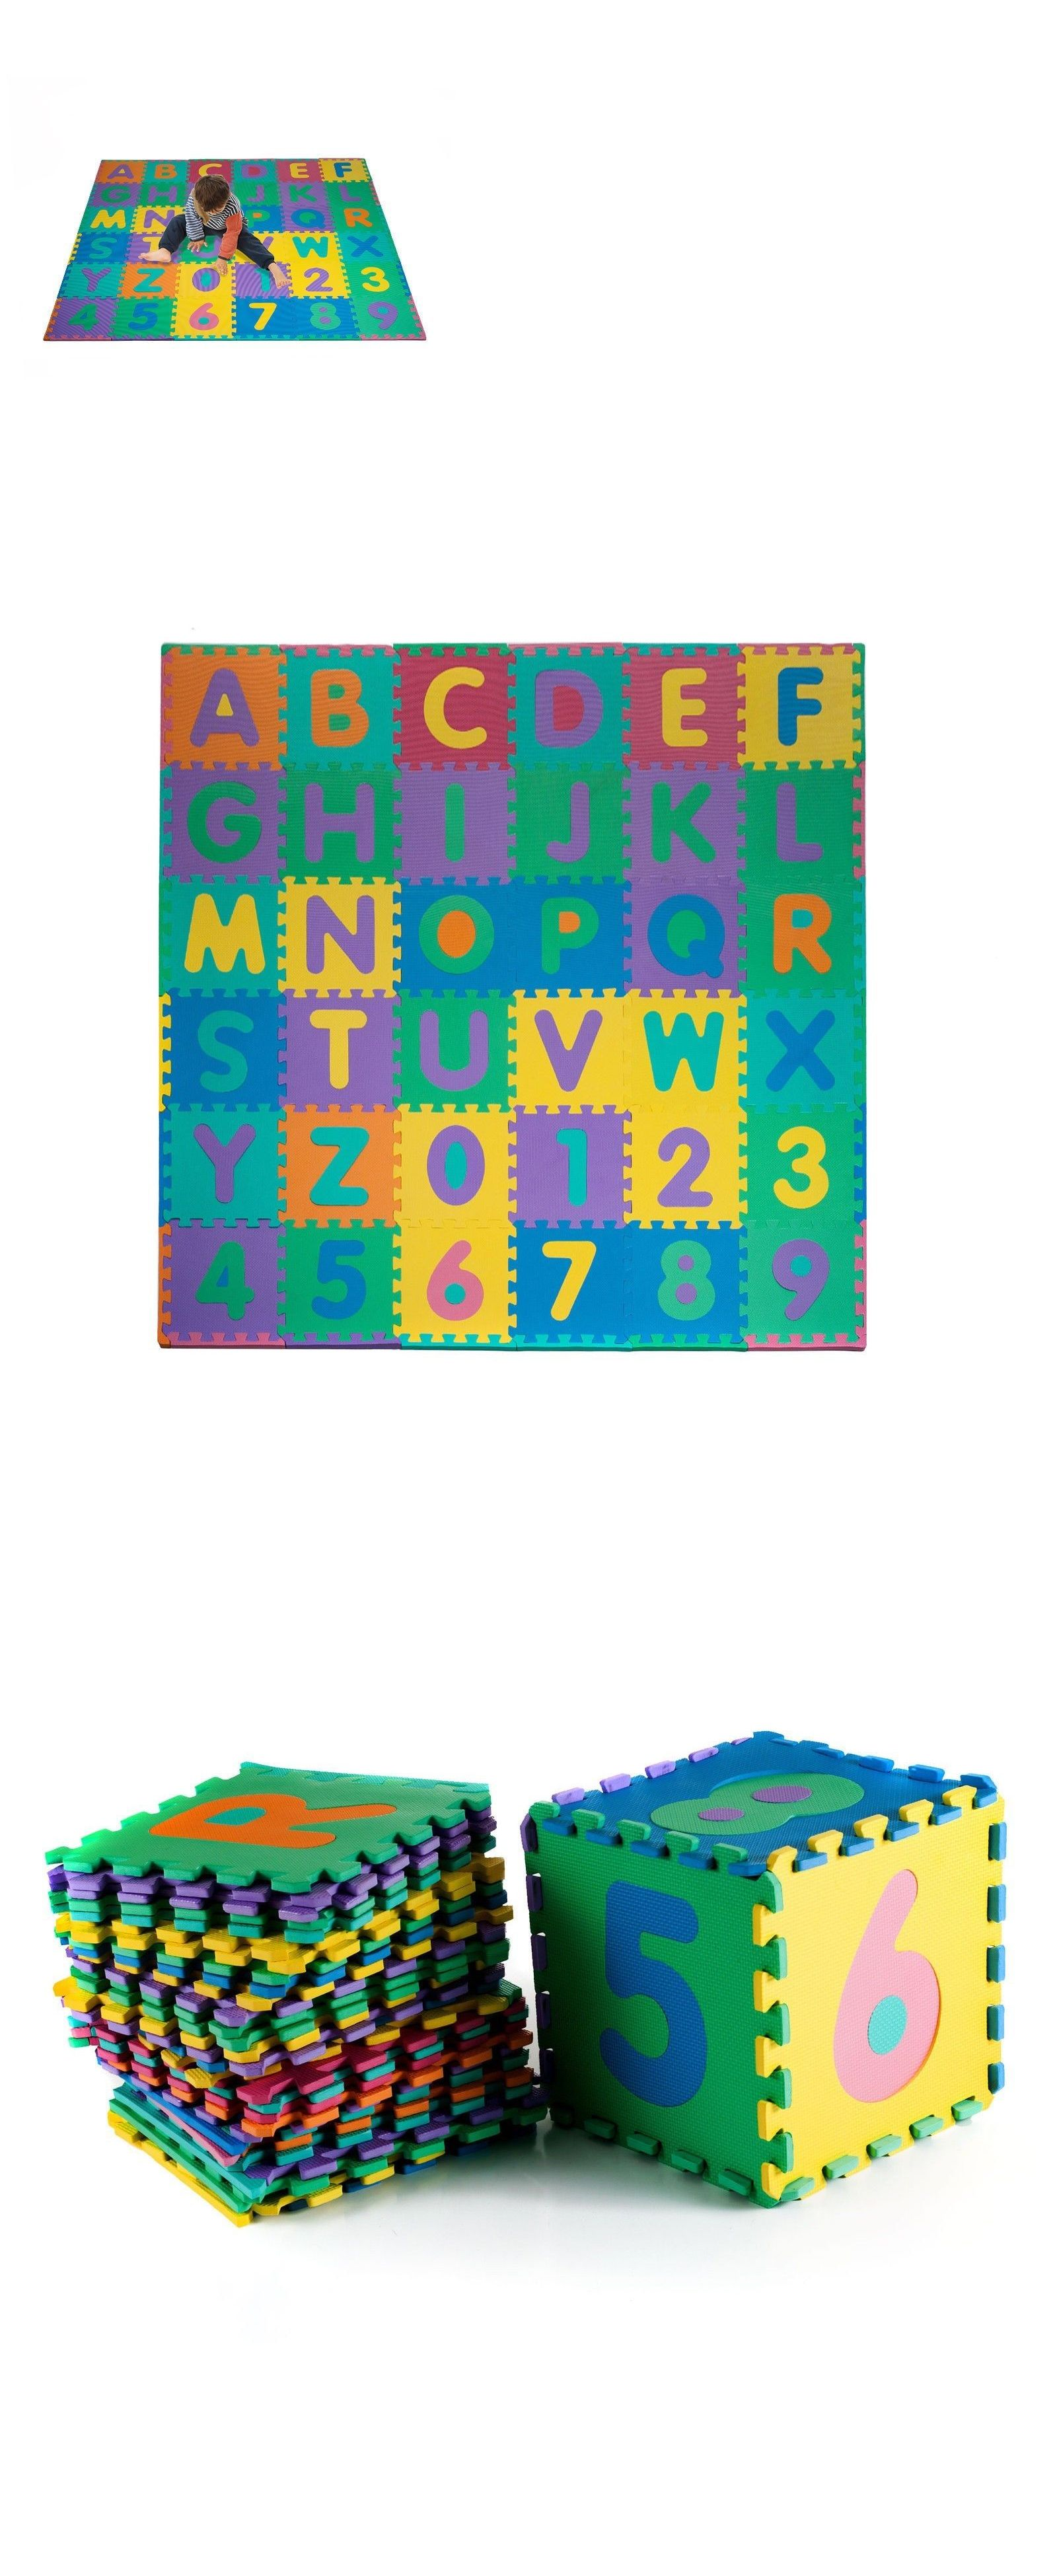 Blocks Tiles And Mats 145931 96 Pc Foam Floor Alphabet And Number Puzzle Mat For Kids 6 Feet Square Buy It No Puzzle Mat Foam Flooring Childrens Play Mat